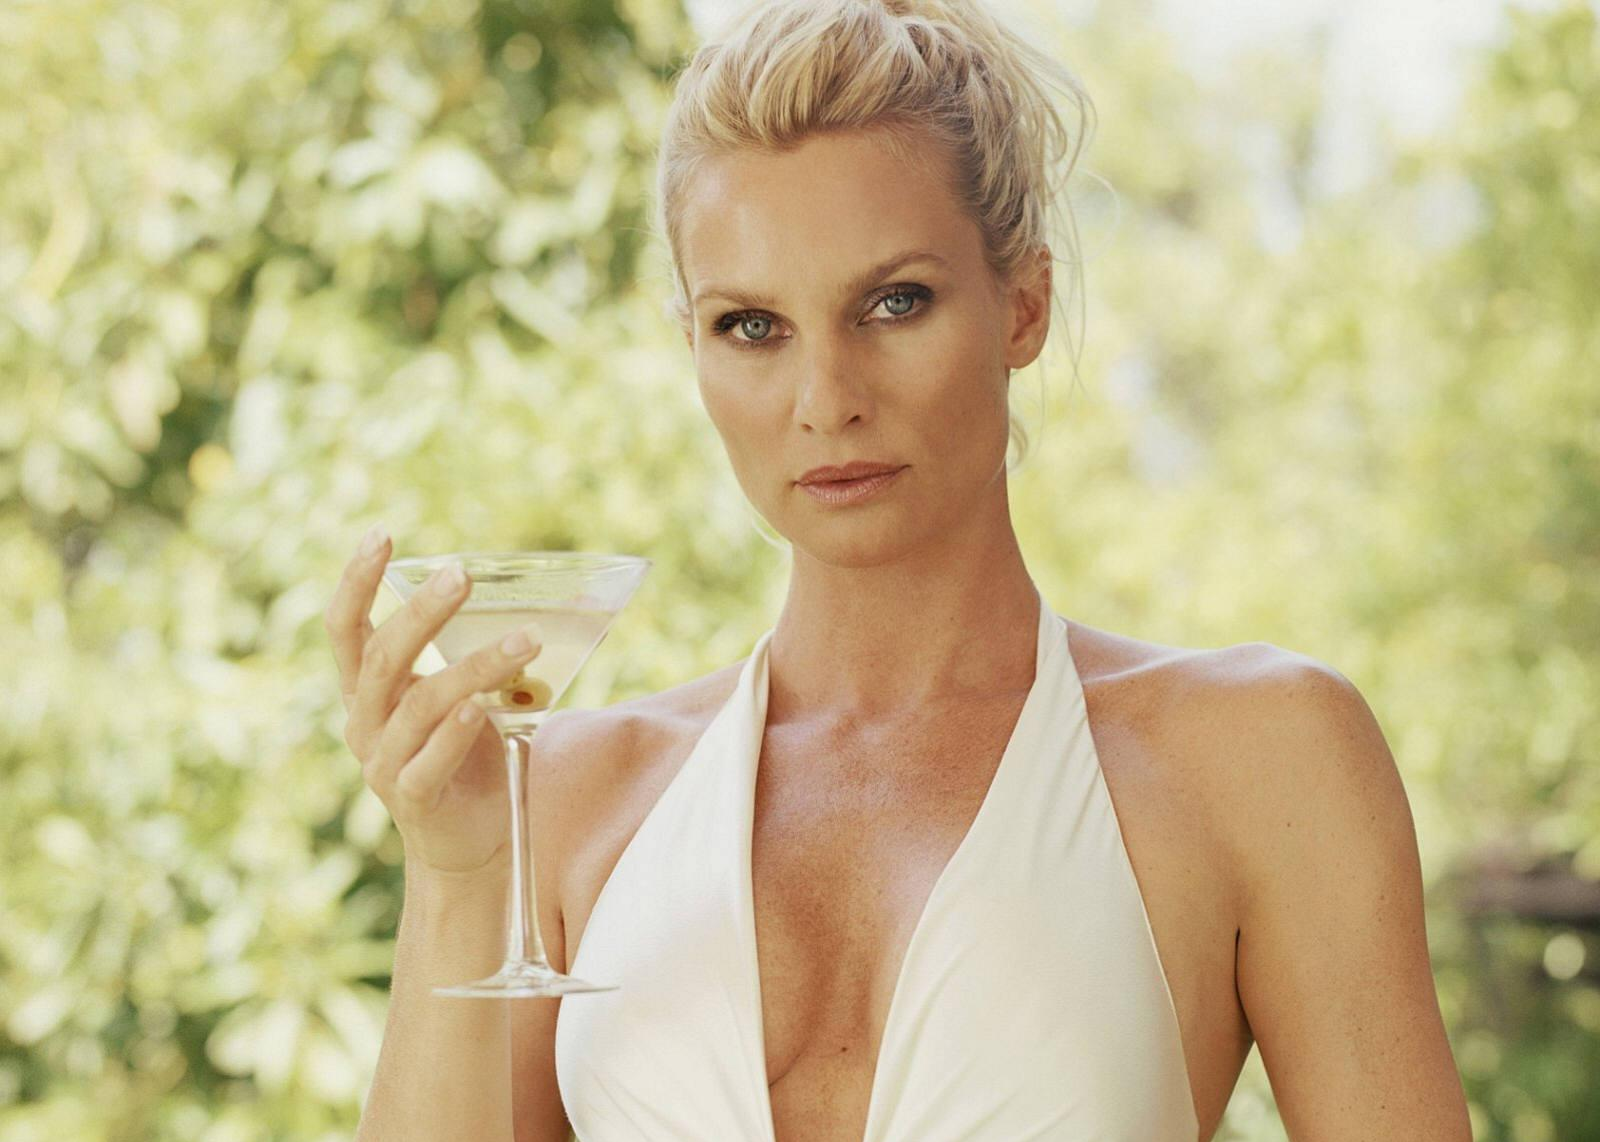 Fappening Is a cute Nicolette Sheridan naked photo 2017